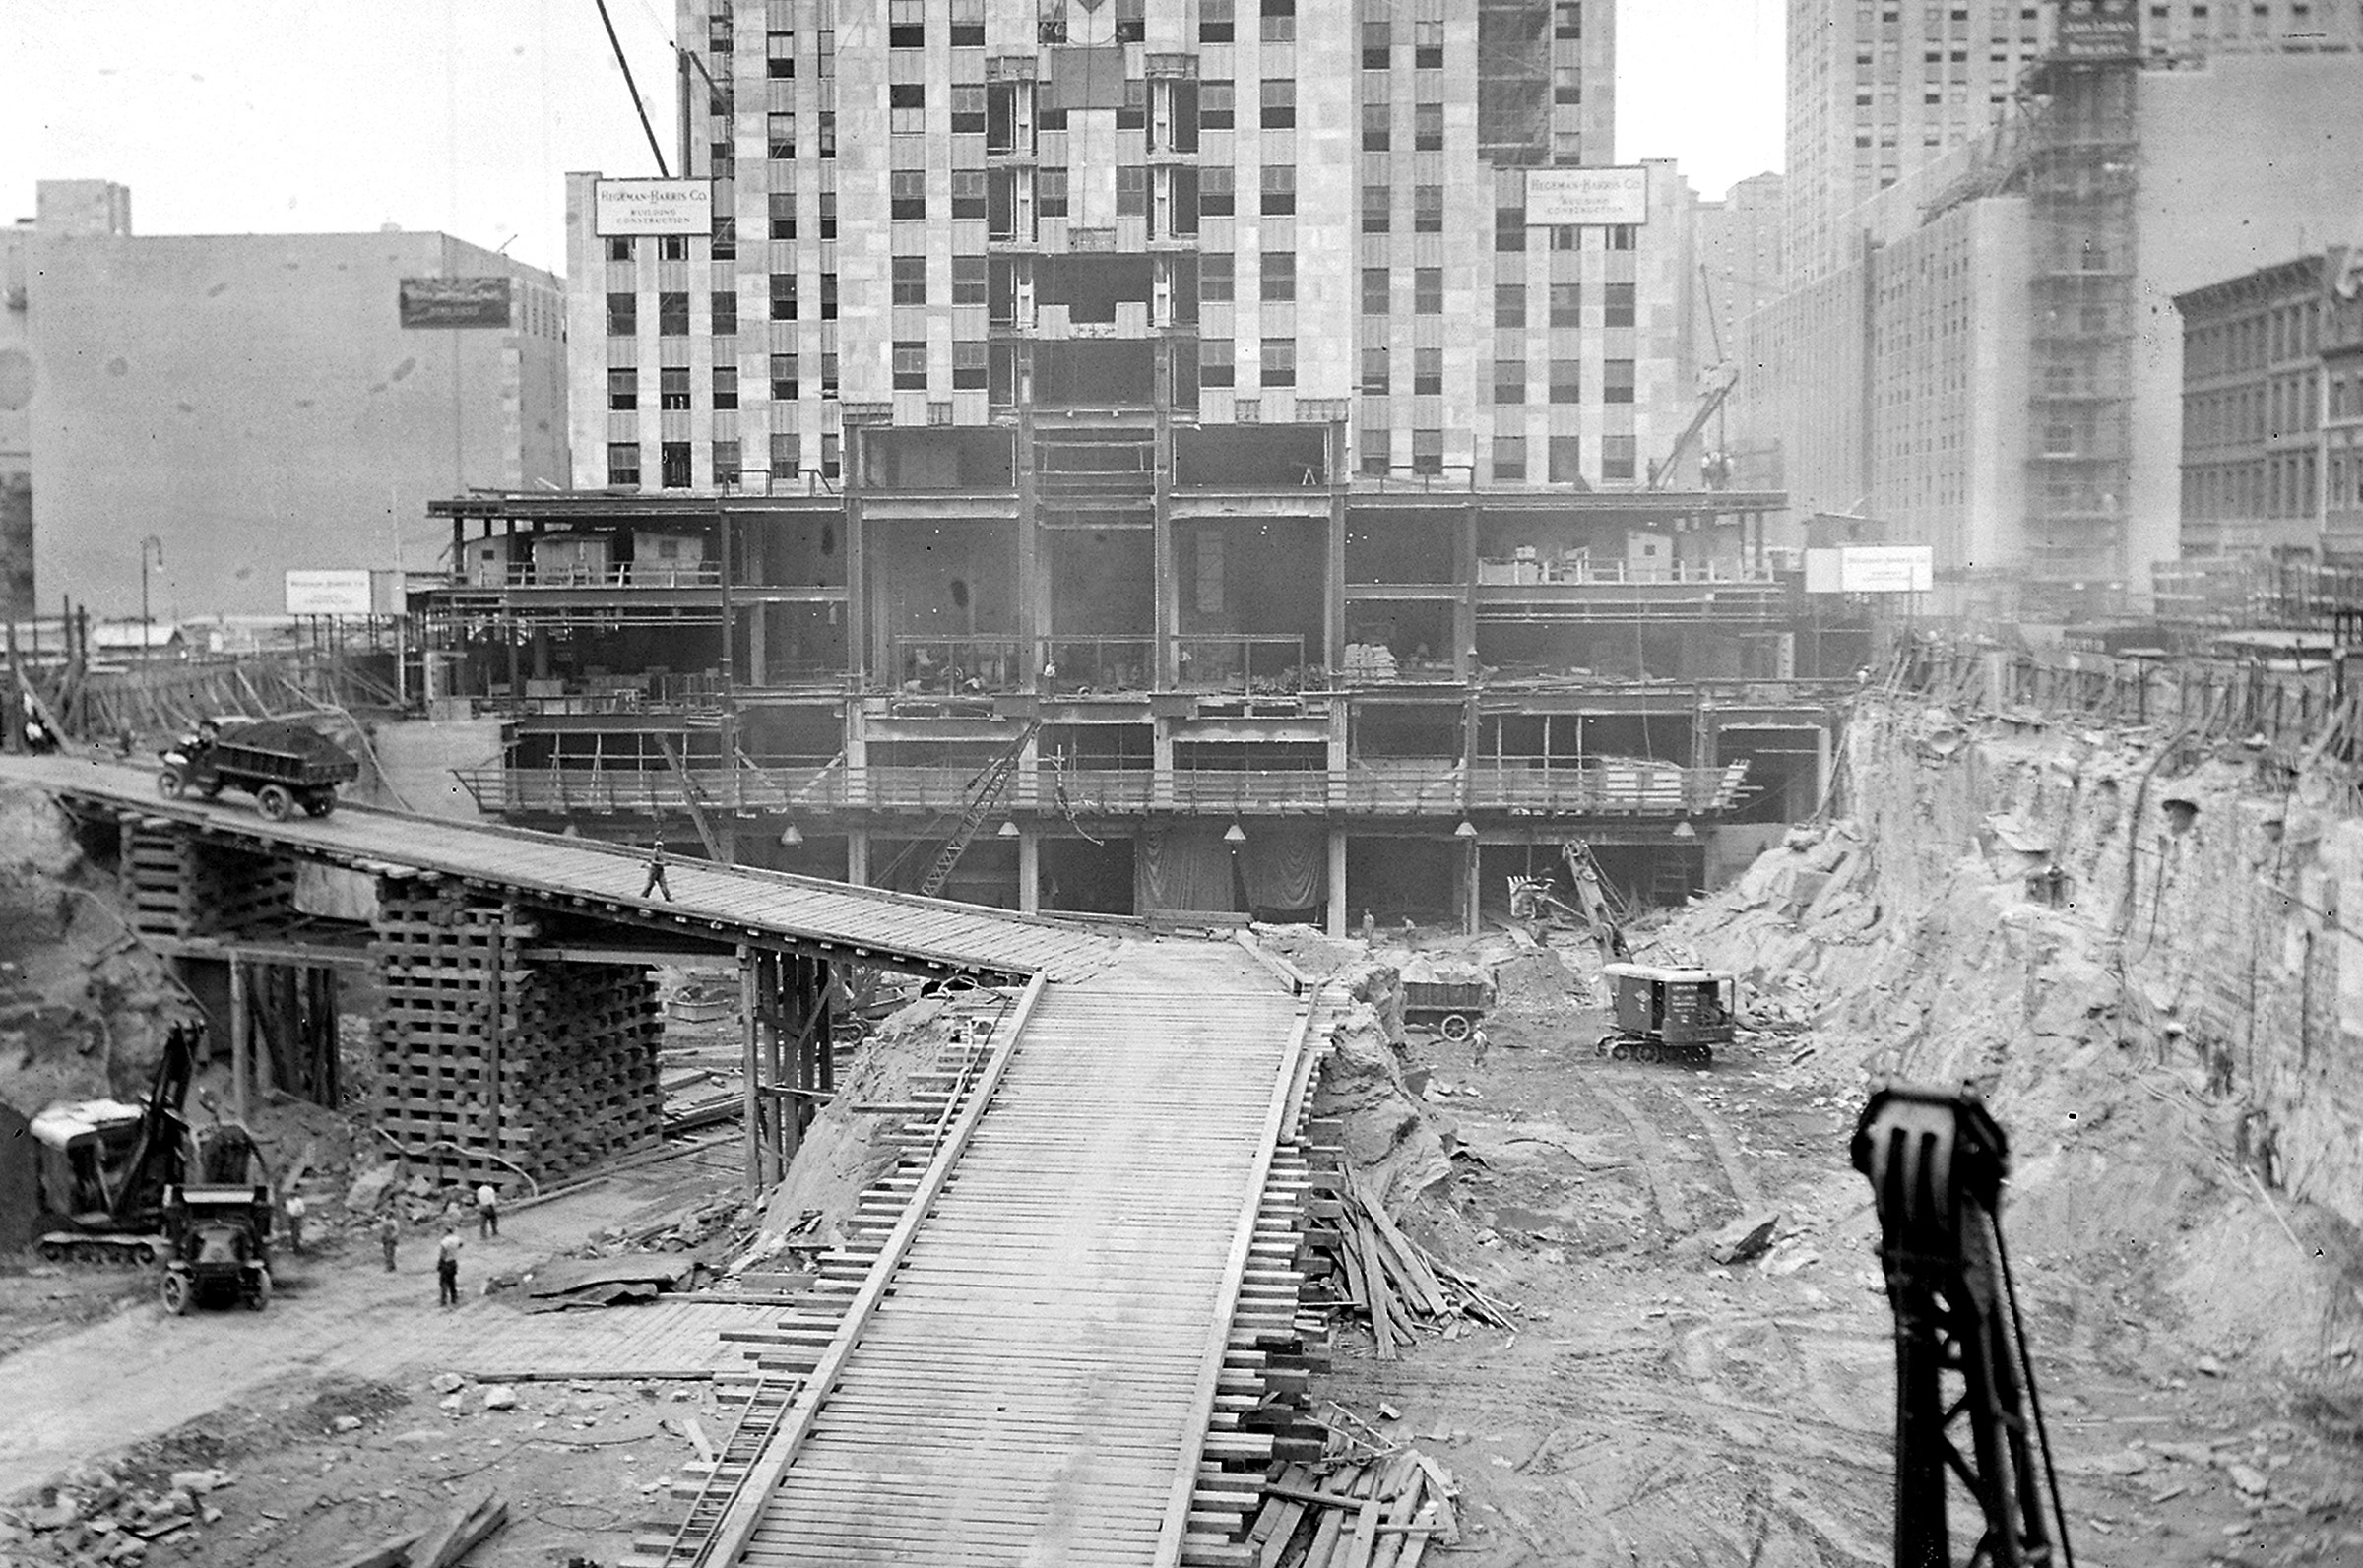 Excavation of site for Rockefeller Center construction on January 26, 1932. The site was formerly a botanic garden.